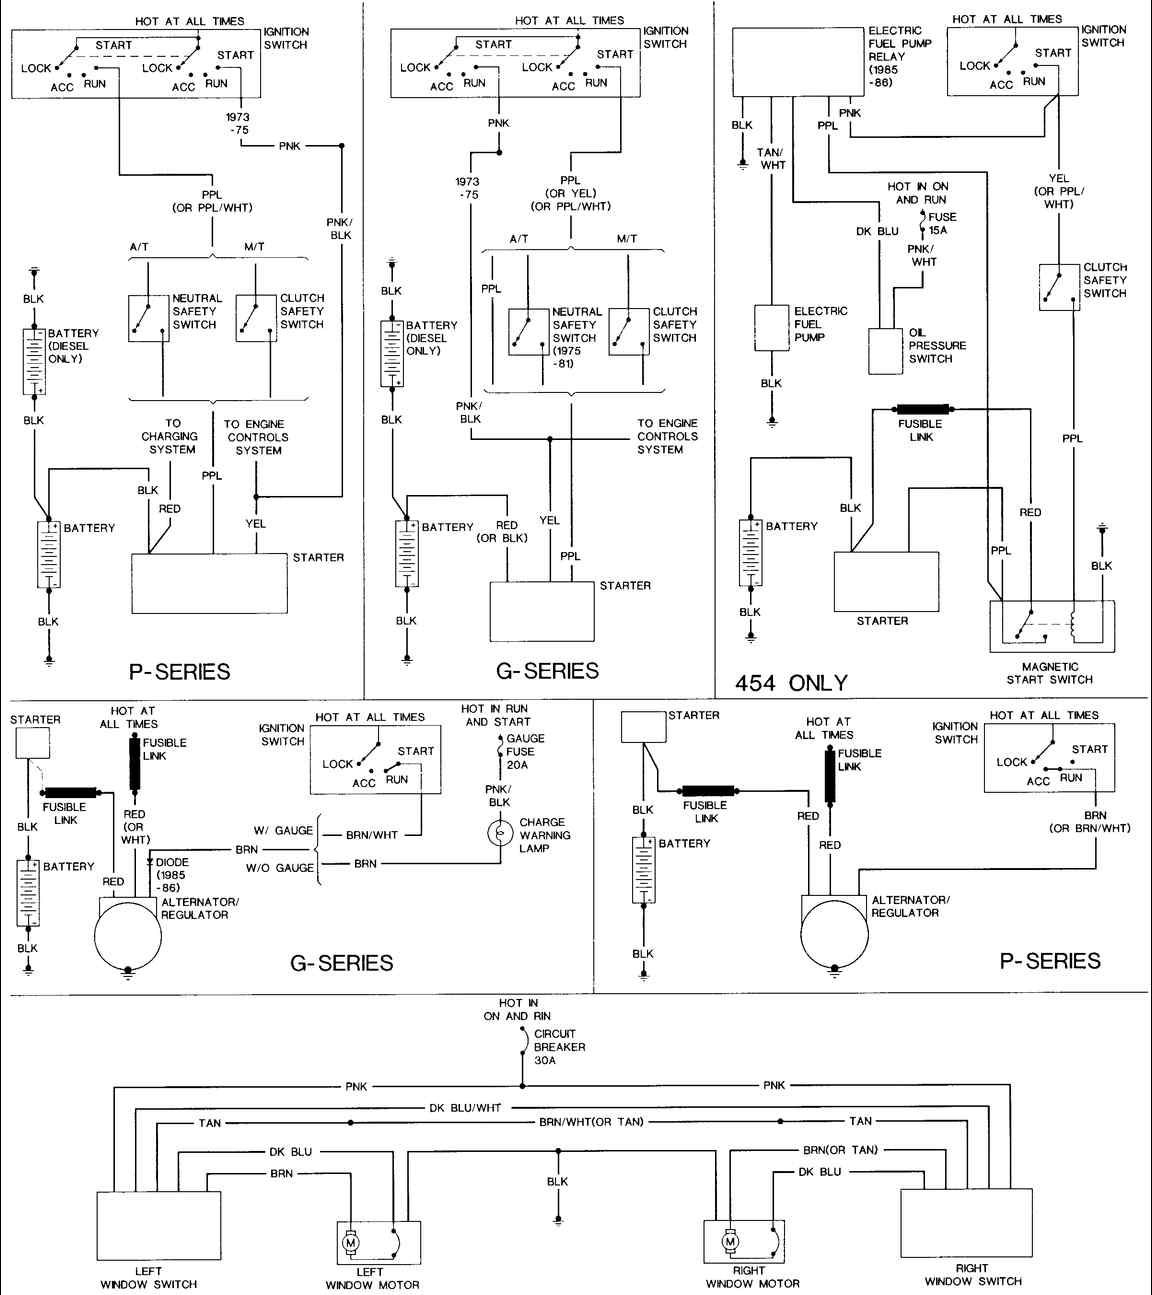 596FF Wiring Diagram 85 Chevy 350 | Digital Resources on chevy starter solenoid wiring, chevrolet starter diagram, chevy cavalier exhaust diagram, chevrolet alternator wiring diagram, chevy starting system diagram, chevy cavalier fuel system diagram, chevy cavalier headlight wiring diagram, chevy cavalier spark plug gap, chevy cavalier alarm wiring diagram, 2000 chevy cavalier radio wiring diagram, 2003 chevy cavalier wiring diagram, chevy cavalier neutral safety switch diagram, chevy cavalier transmission diagram, chevy truck starter wiring, chevy cavalier suspension diagram, chevy cavalier window motor wiring diagram, chevy cavalier electrical diagram, chevy cavalier solenoid diagram, 2003 chevy venture radiator system diagram, chevy cavalier ignition diagram,